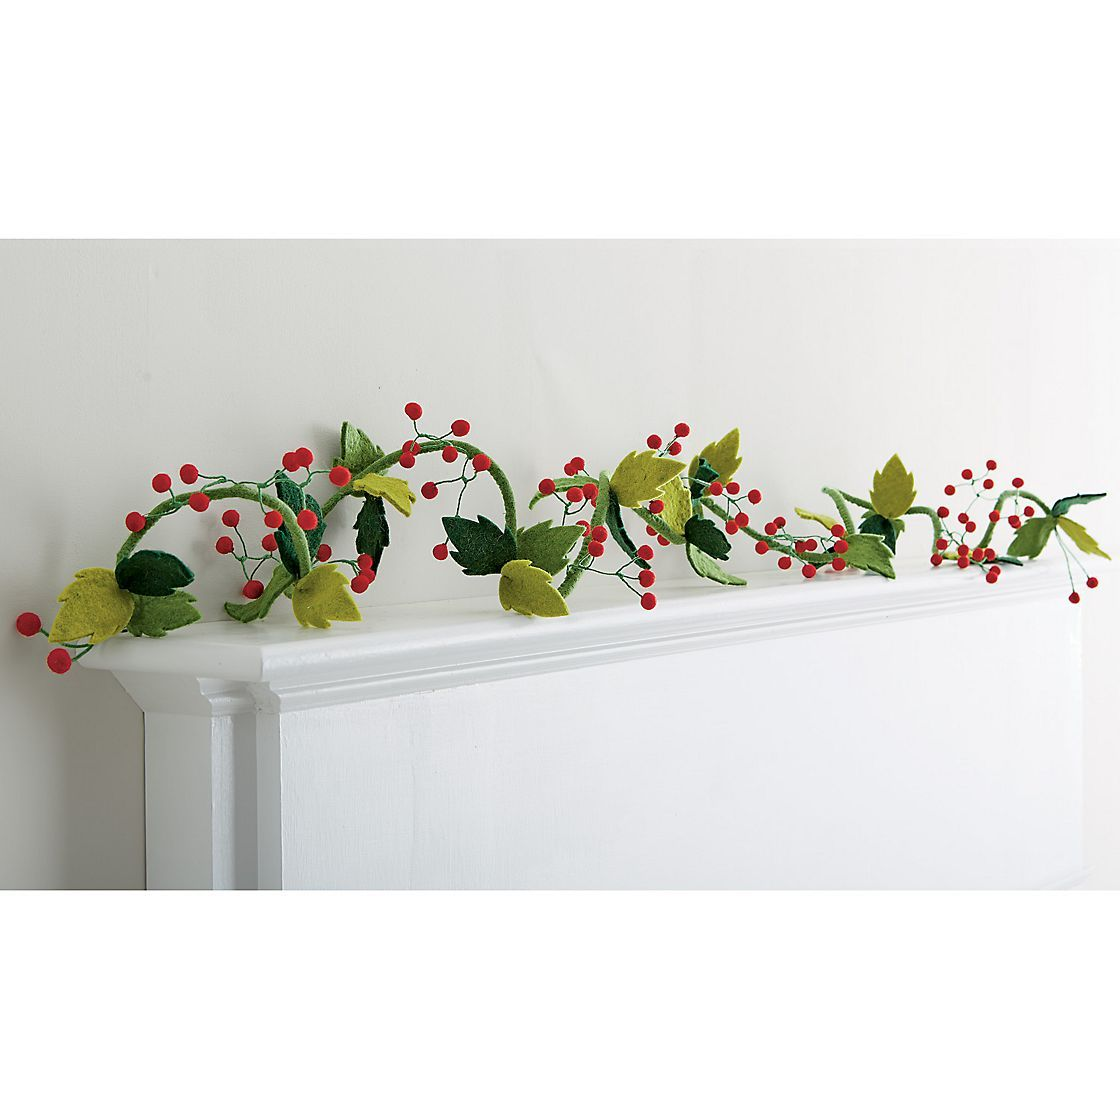 Felt Christmas Garland The Company Store Christmas Felt